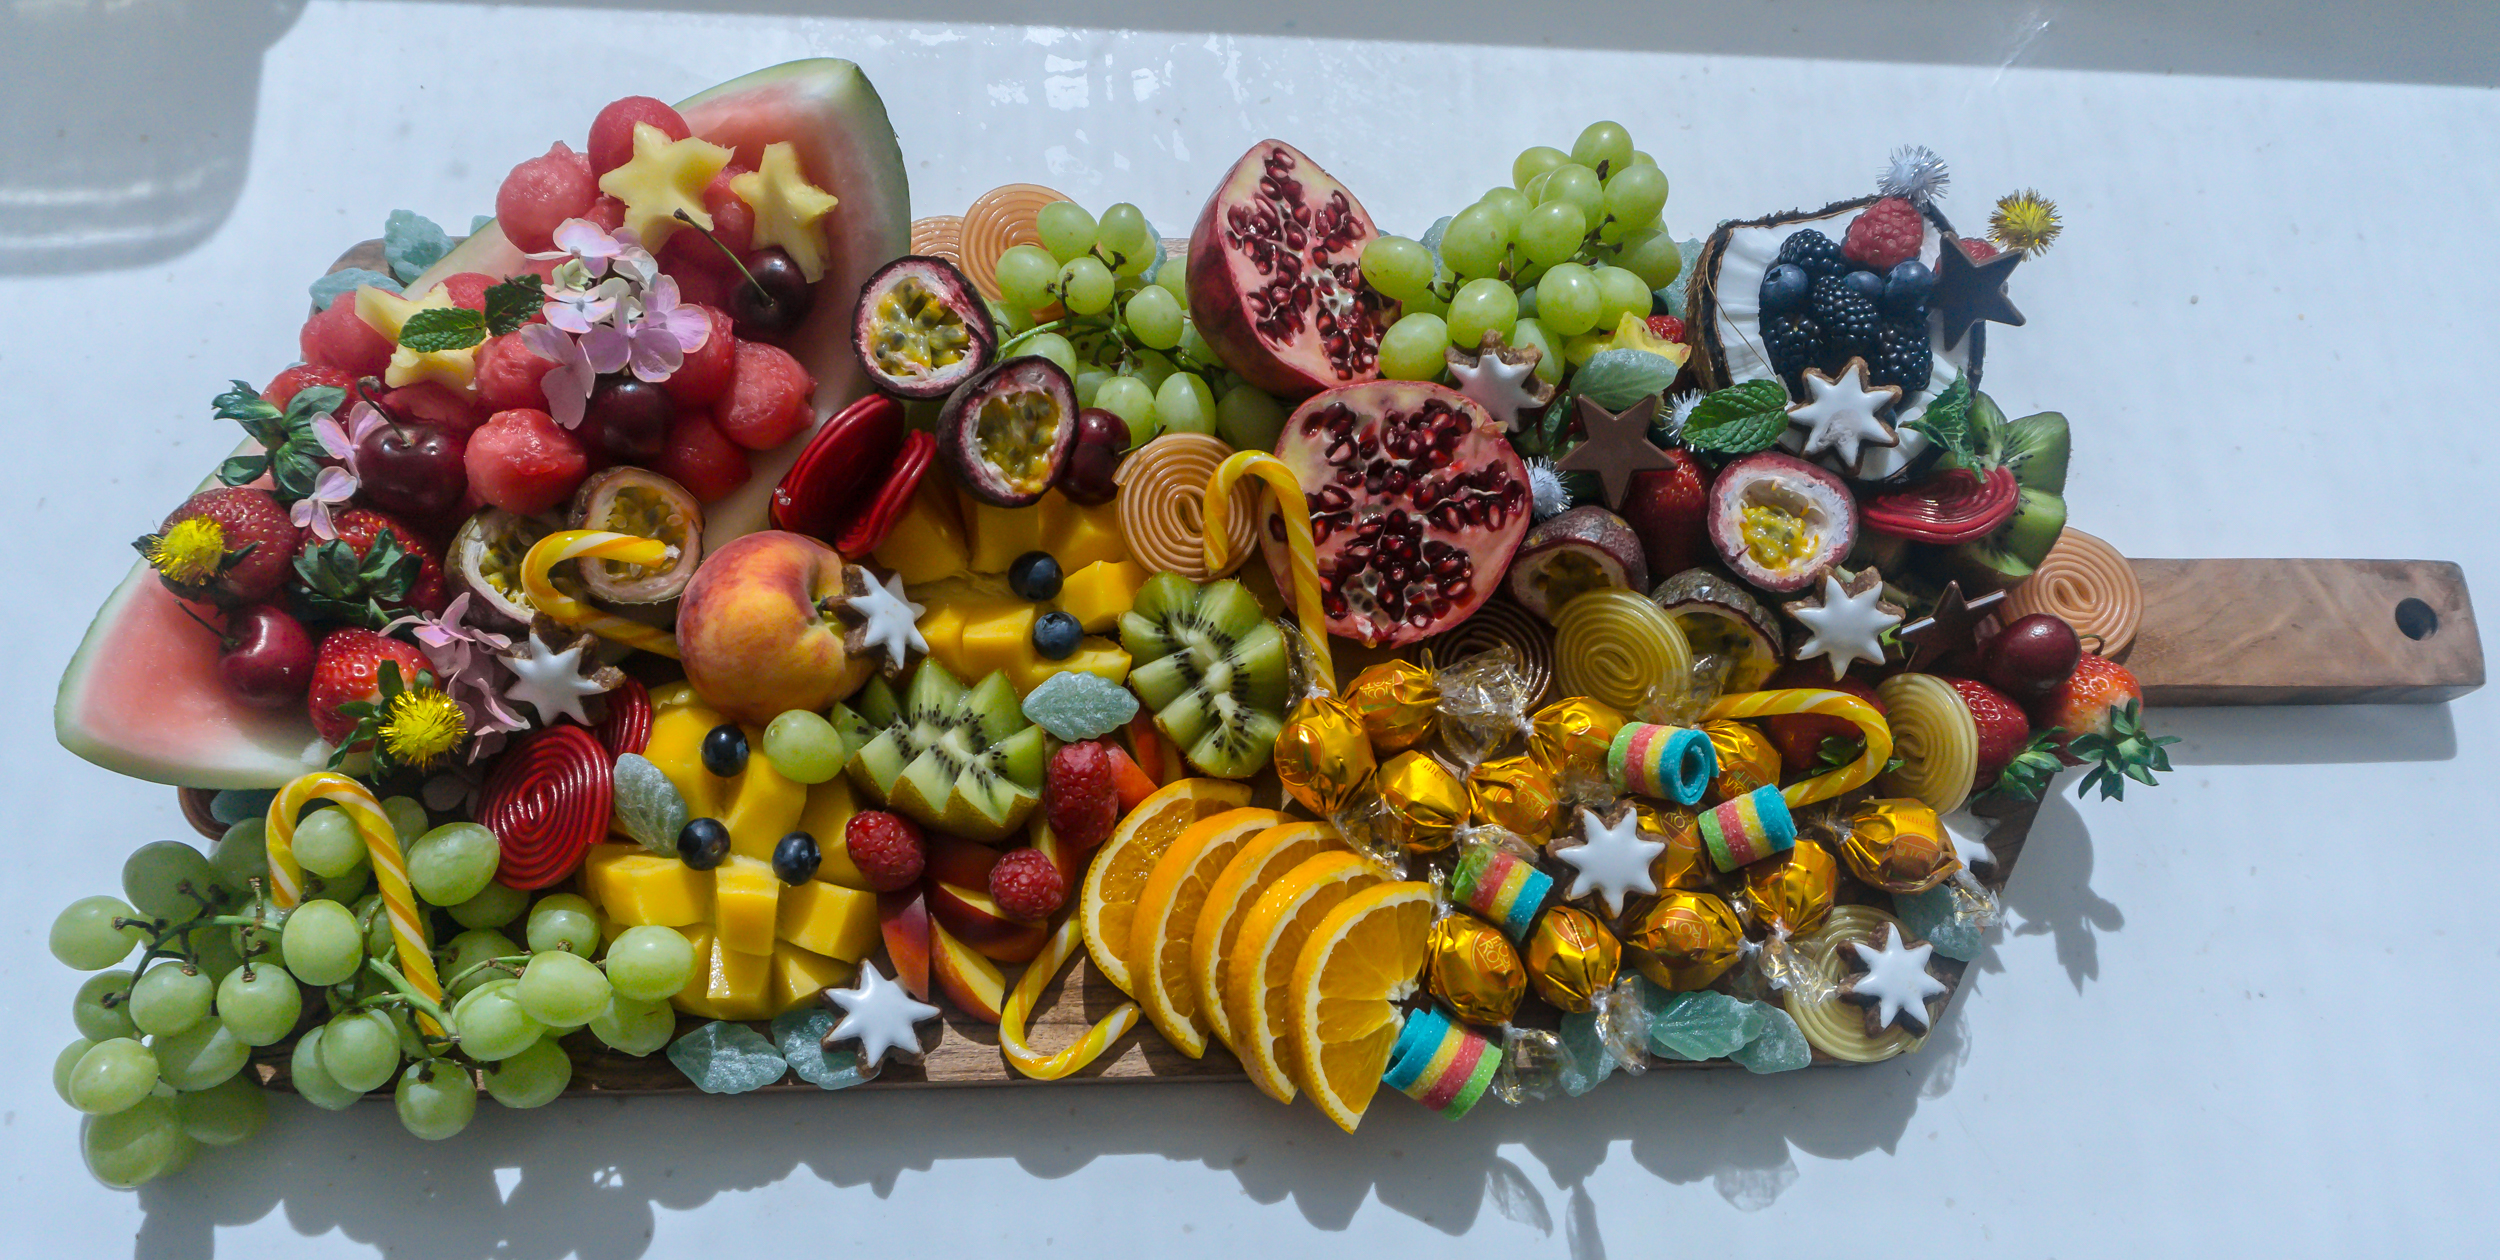 Fancy Fruit Board: a recent Christmas inspired fruit board I created. Same rule of thumb work with your 'bigger items' on the end of your board and work your way inwards with smaller items